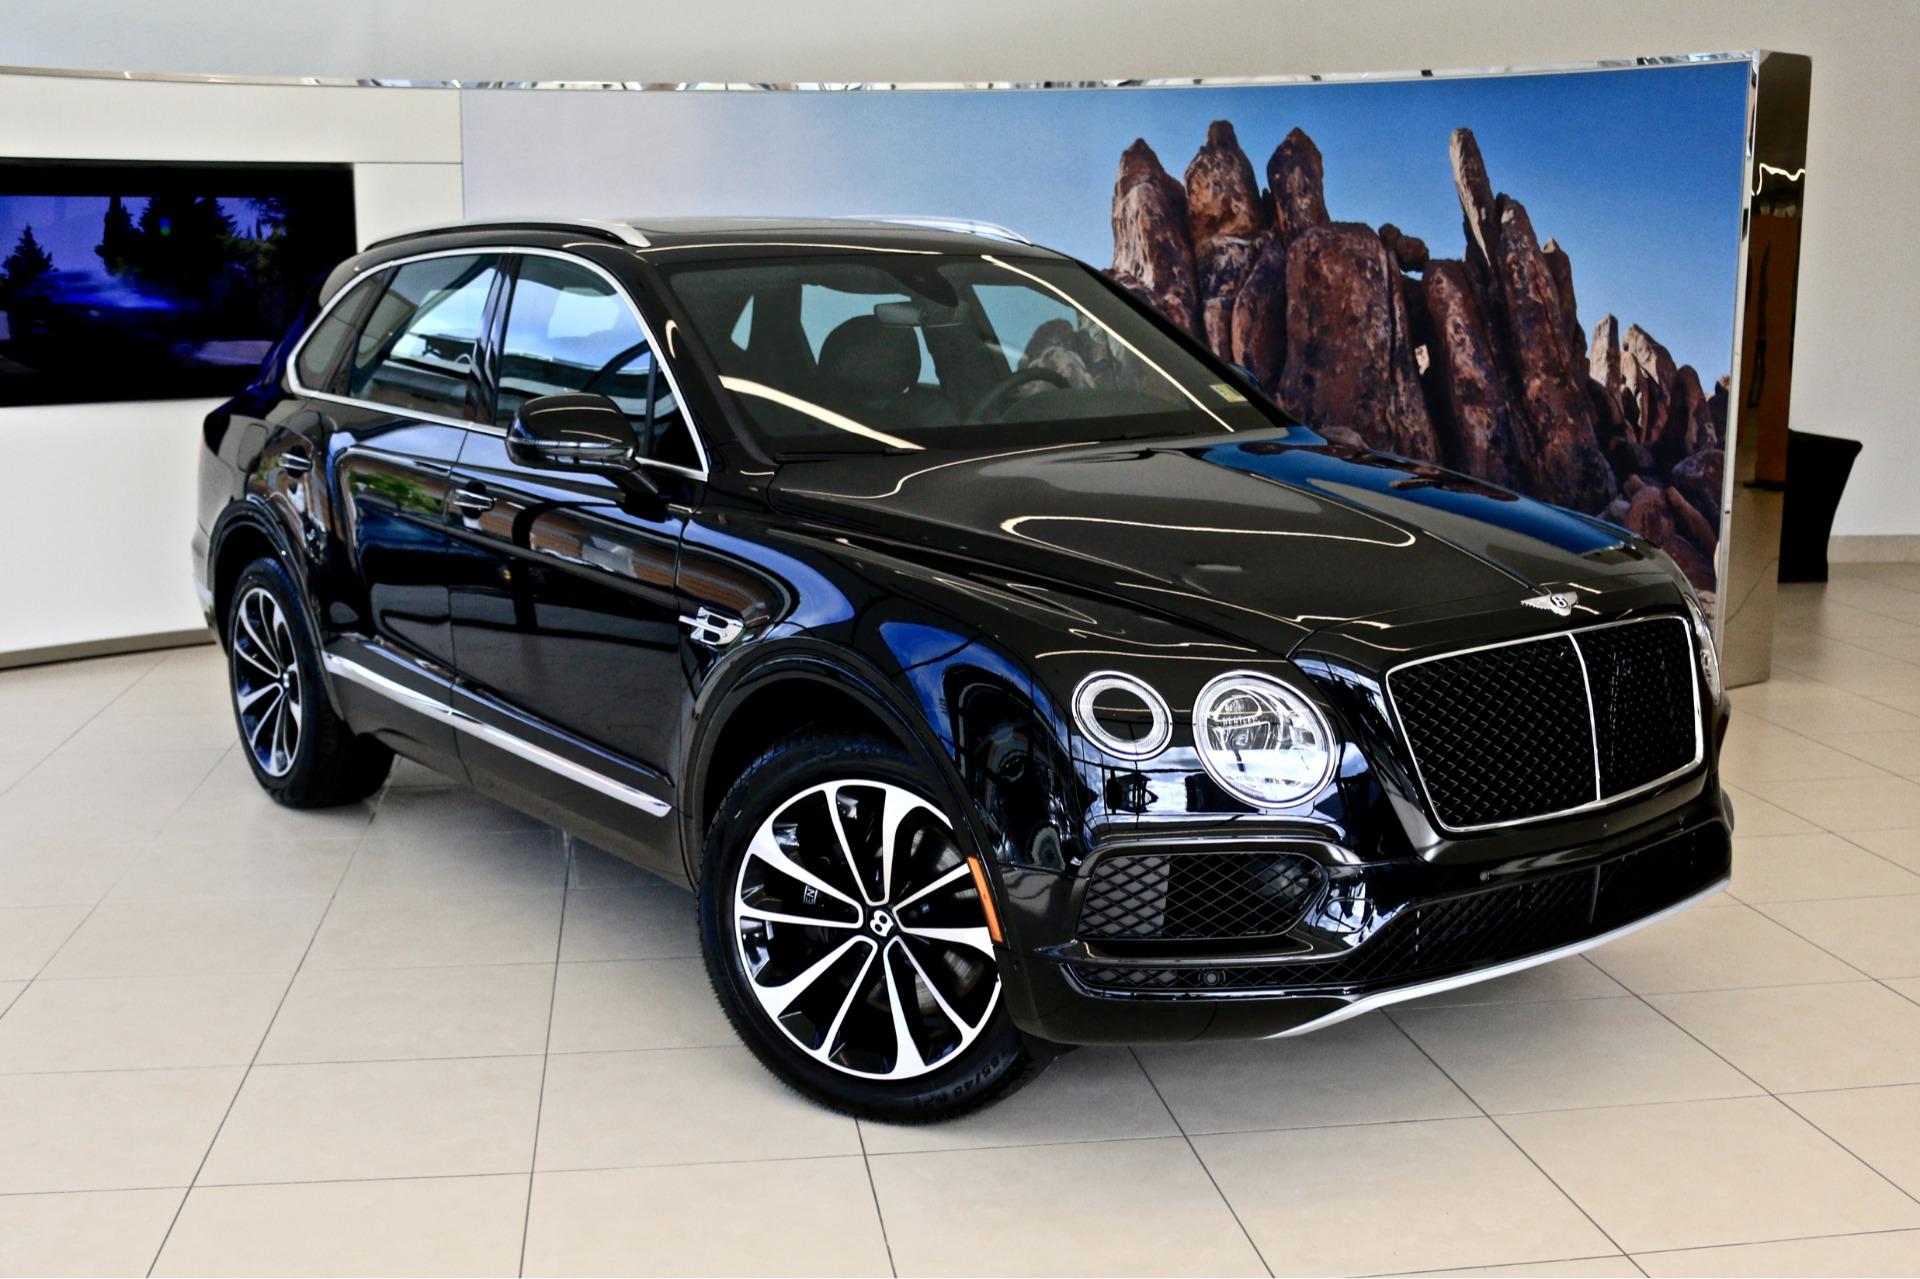 2019 BENTLEY BENTAYGA V8 Stock # 9N024291 For Sale Near